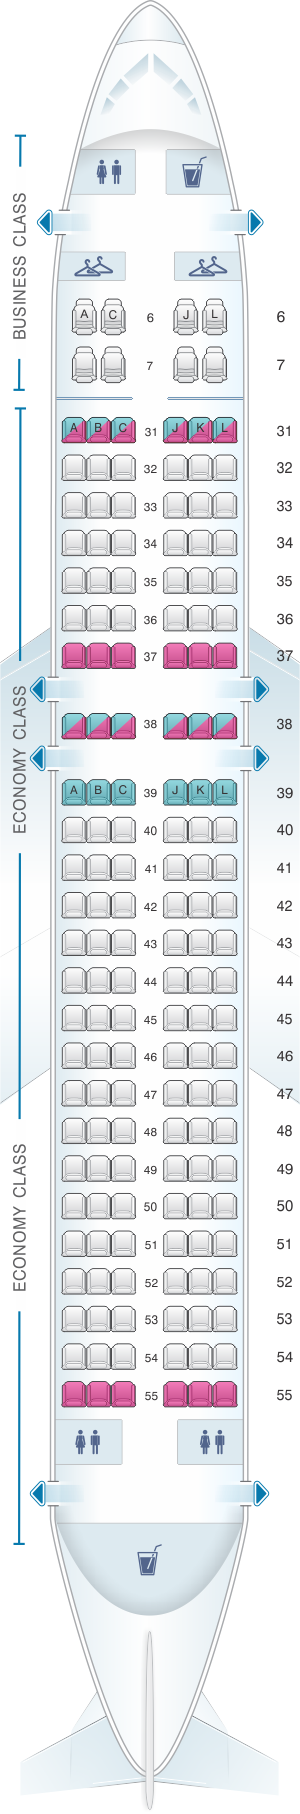 Seat map for China Eastern Airlines Airbus A320 200